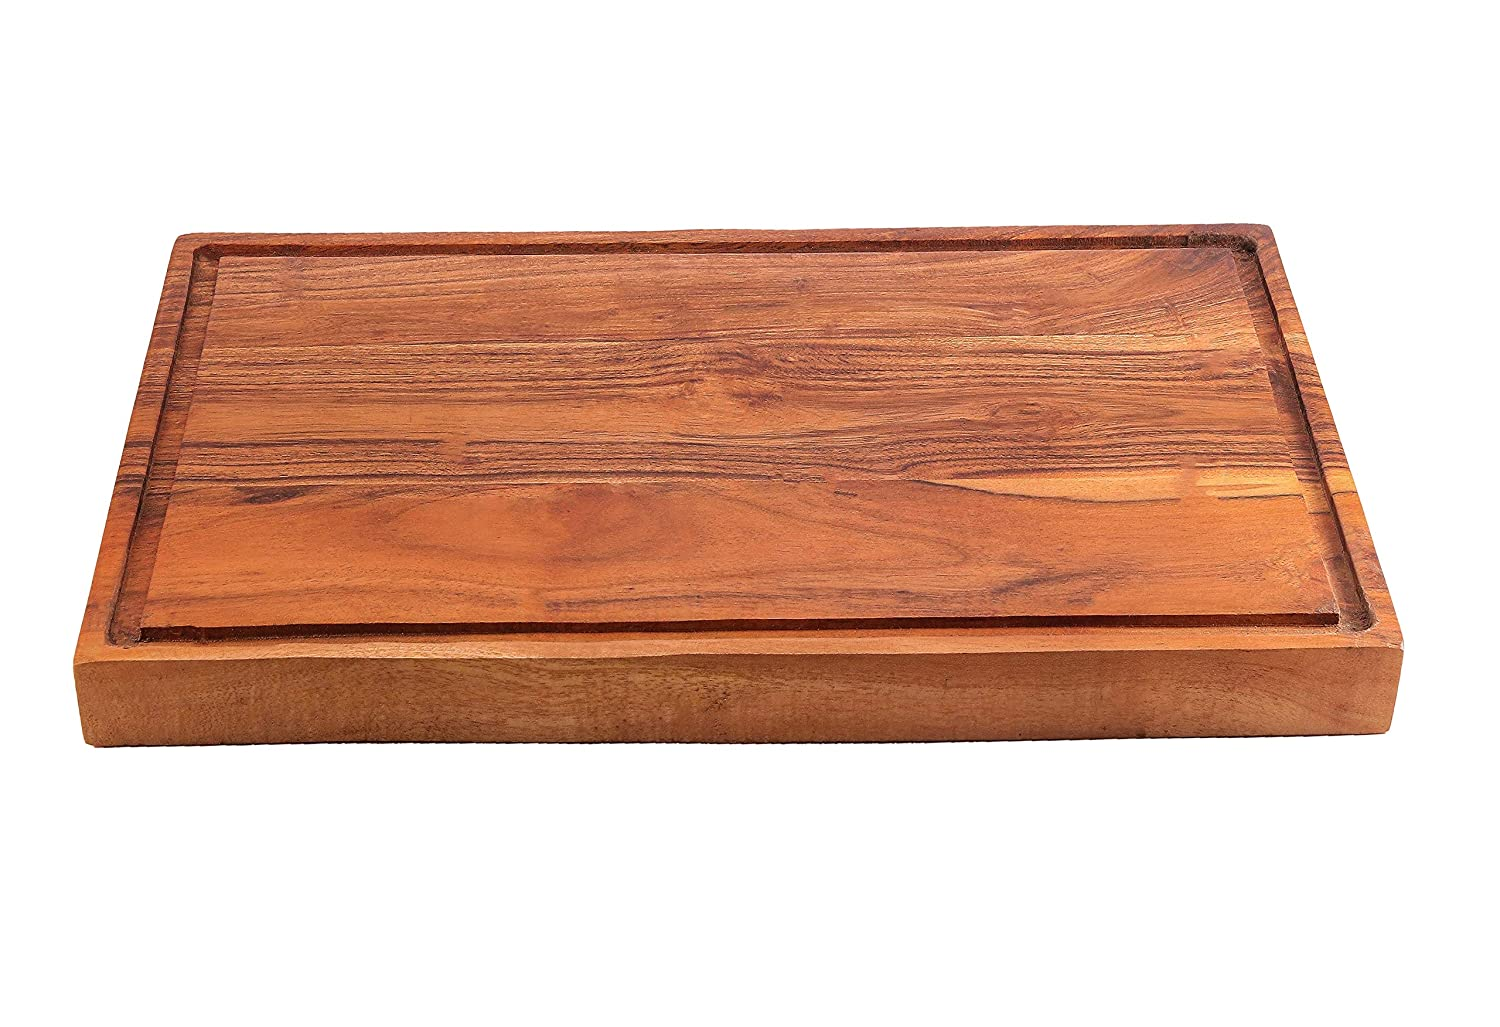 """Large /& Thick Acacia Wood Cutting Board Chopping 17/""""x11/""""x0.75/"""" with Juice Groove"""